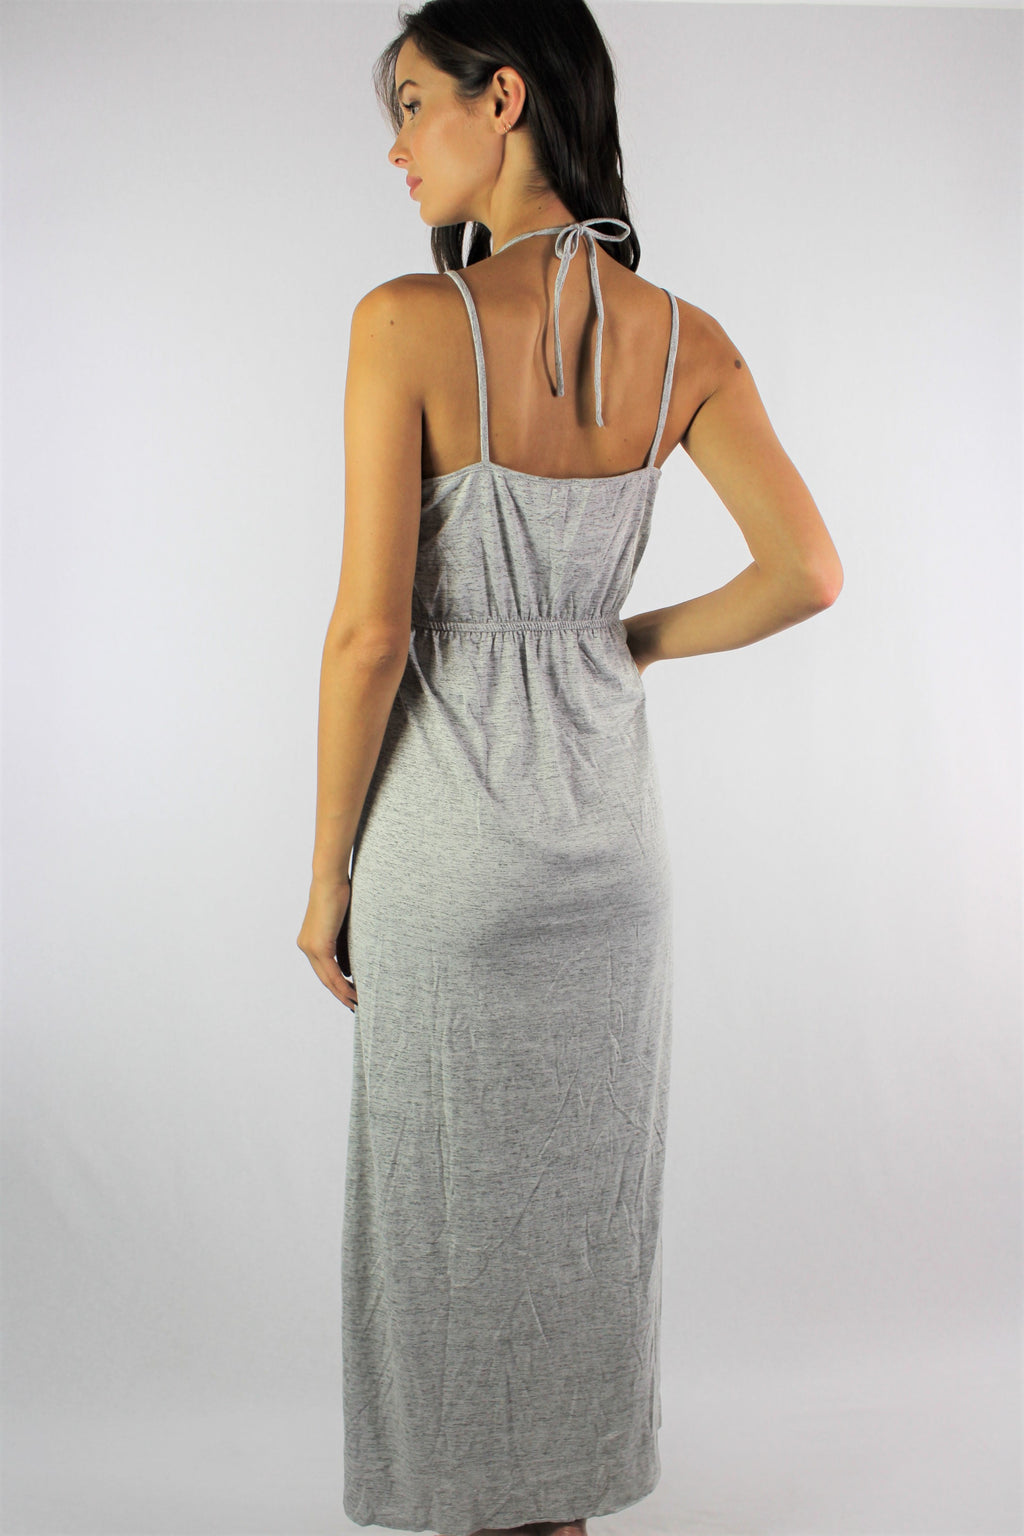 Women's Strappy Hi Low Dress with Cinched Waist